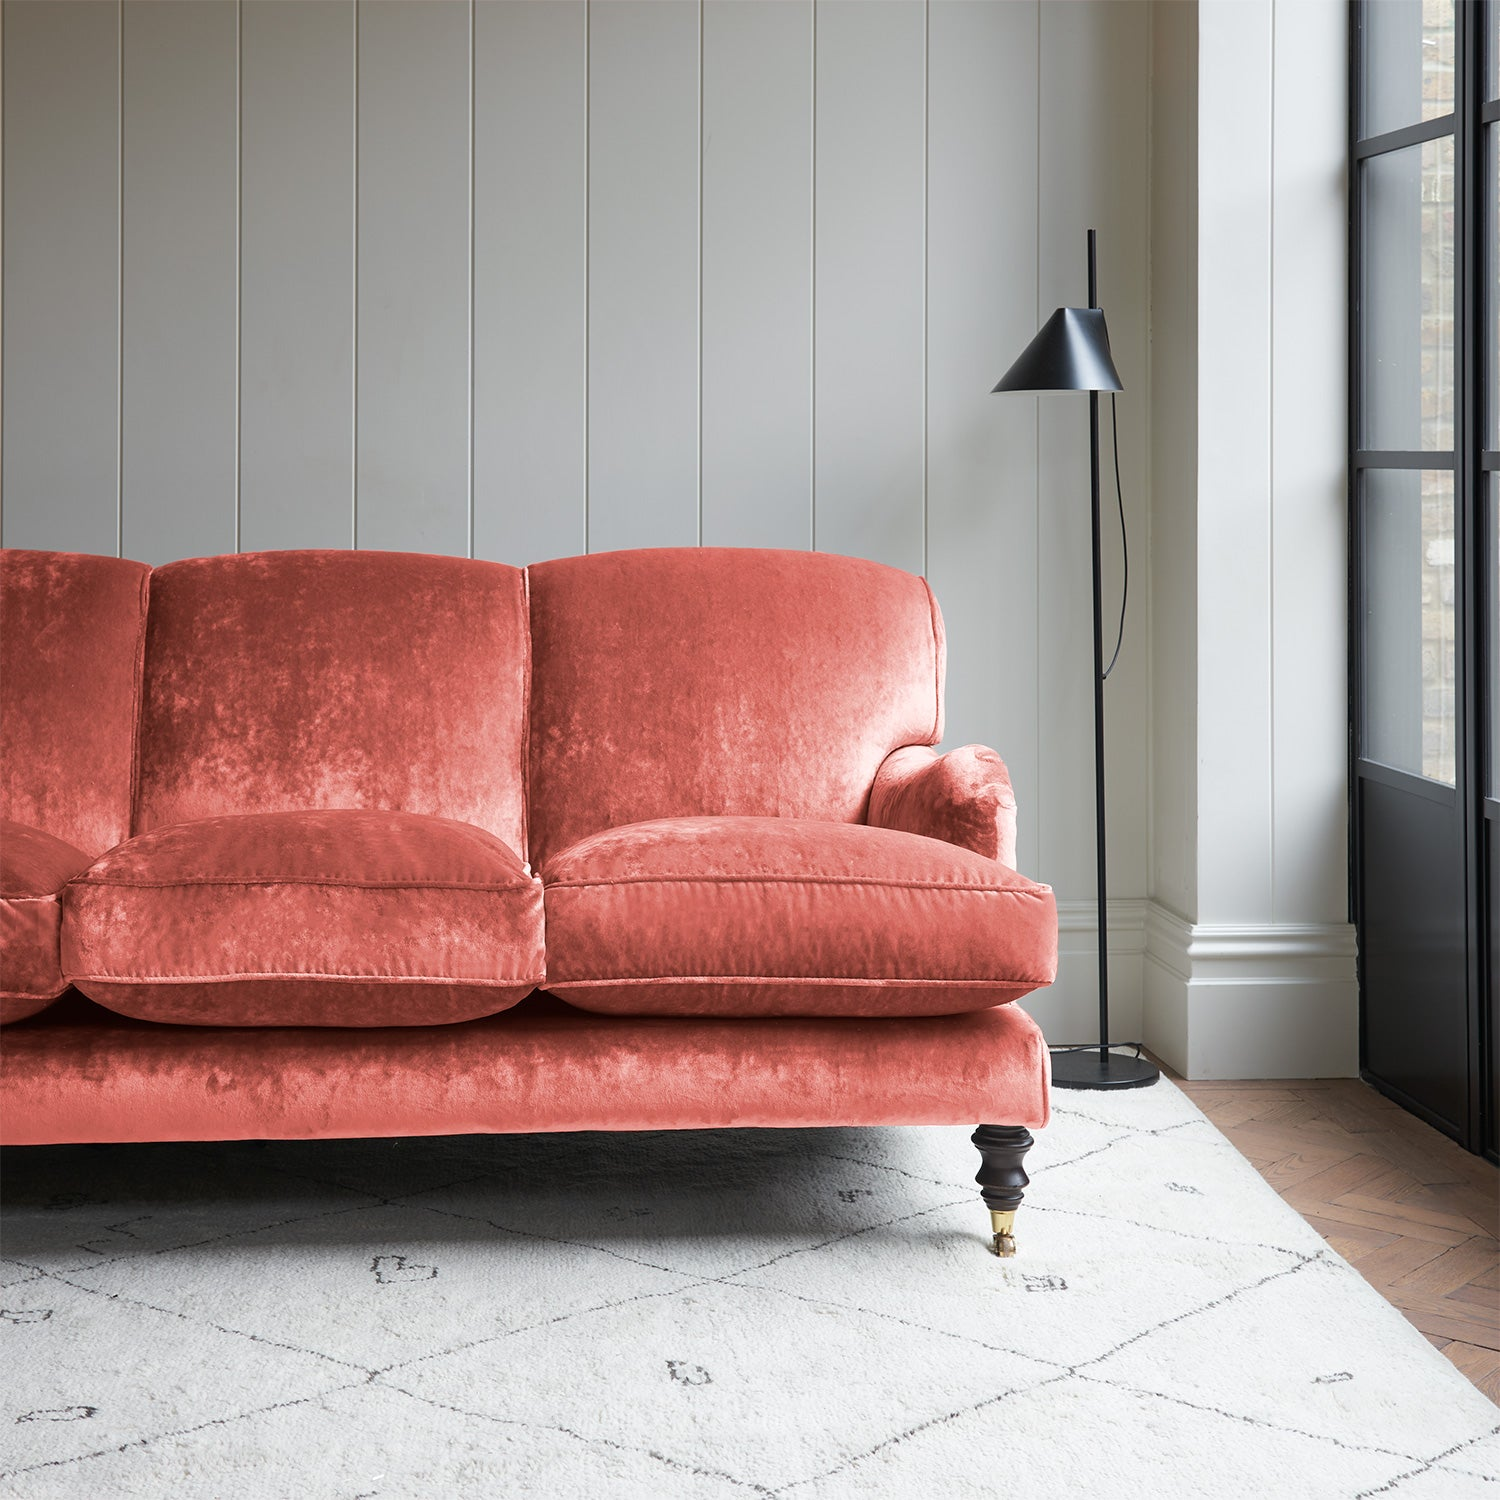 Velvet sofa in a pink crushed velvet upholstery fabric